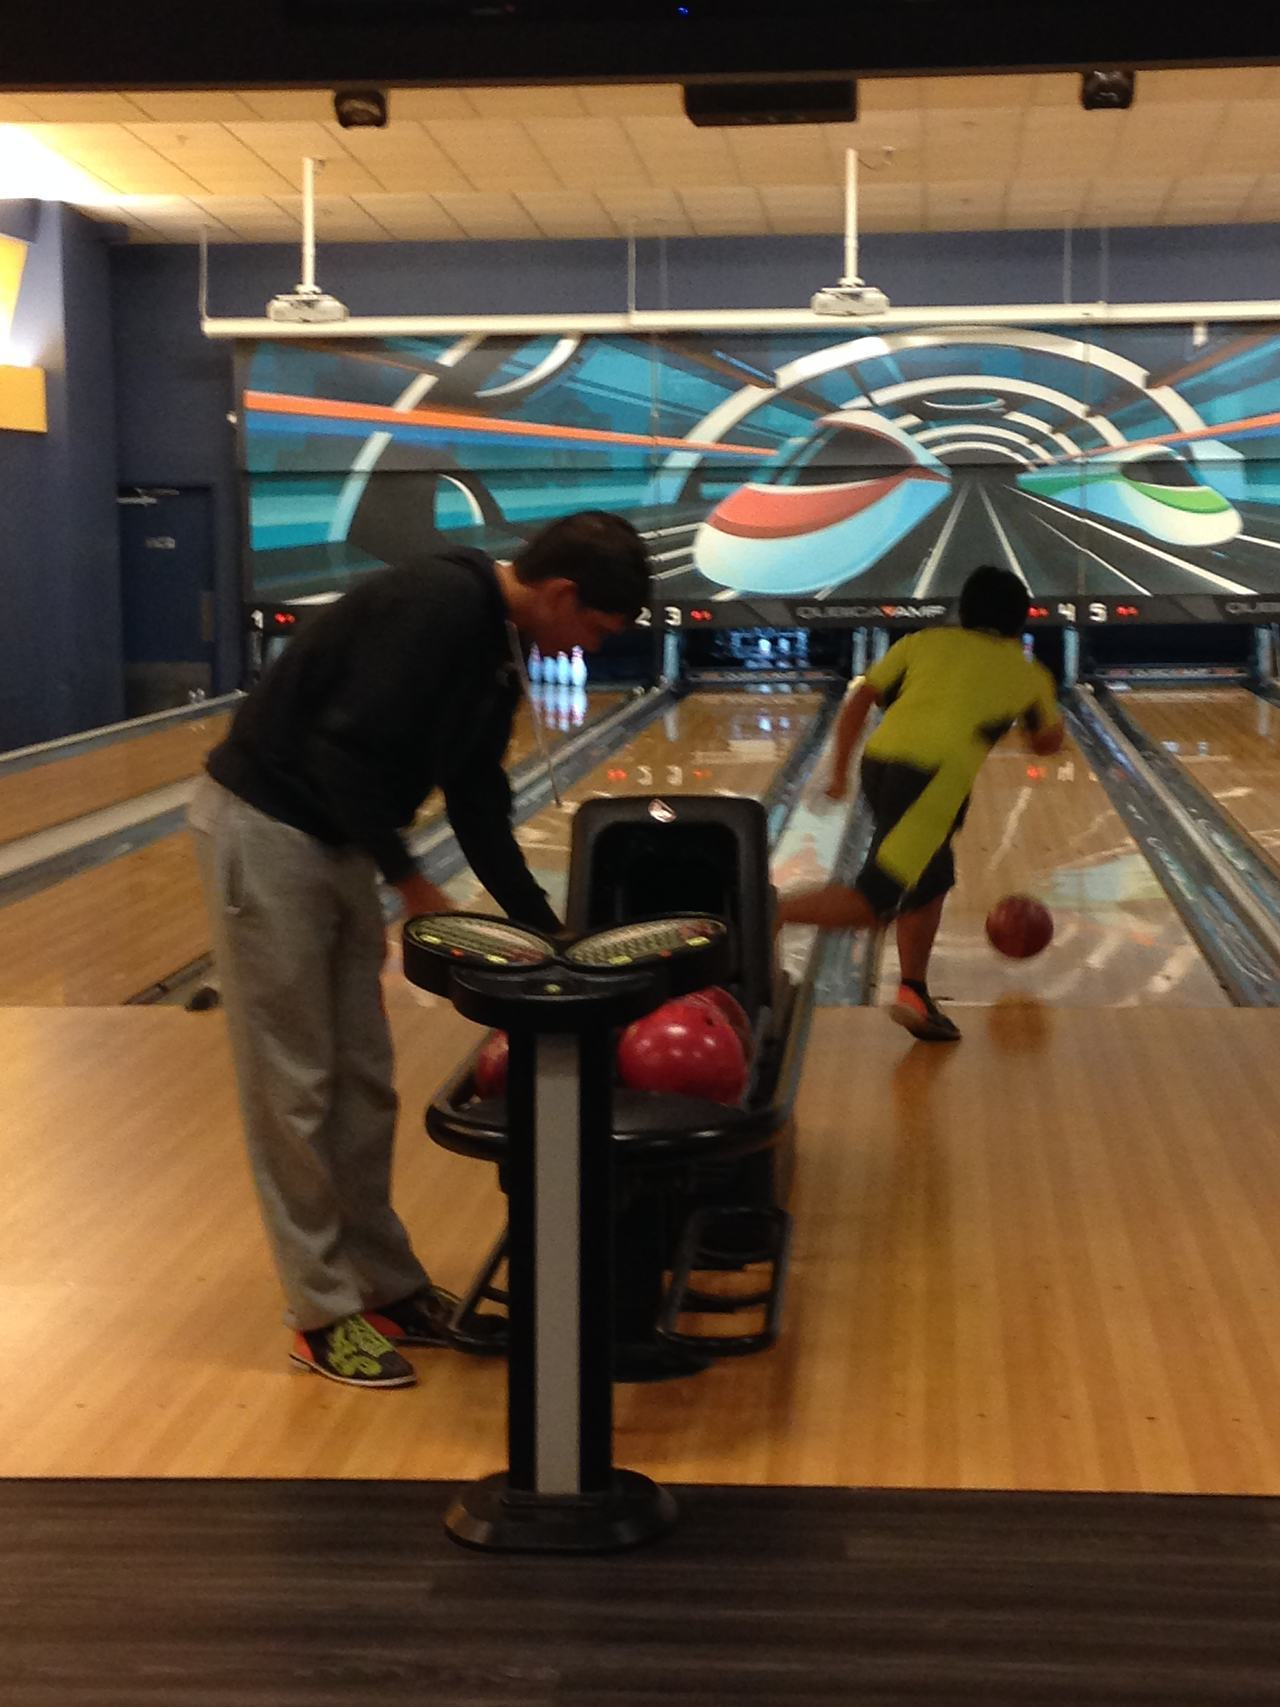 IJGA students Jack O'Donovan and Wataru Koguchi taking part in a trip to a local bowling alley.